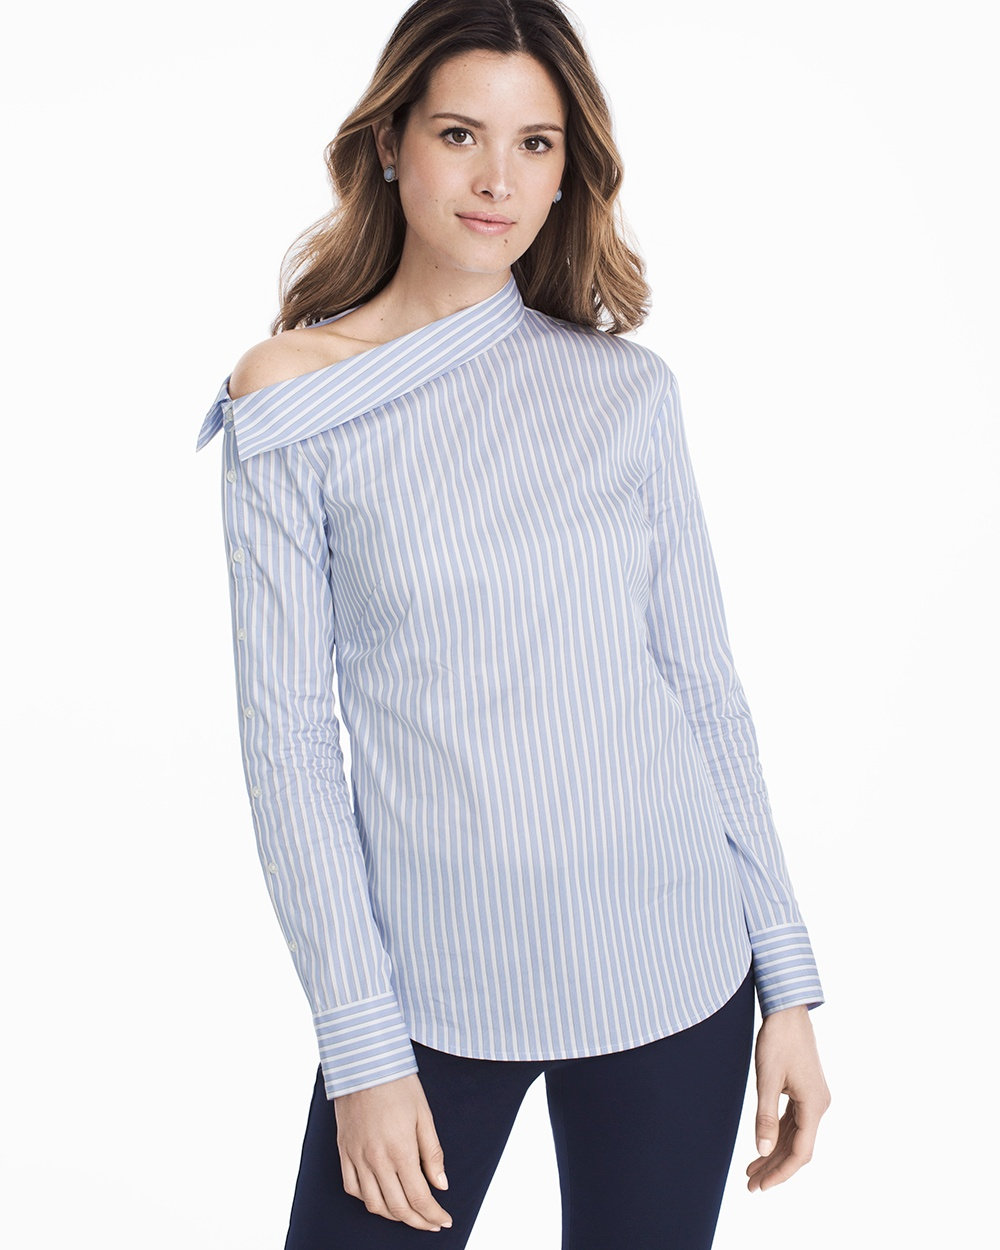 Structured Cotton Blouses for Spring & Summer Blue Oxford Stripe